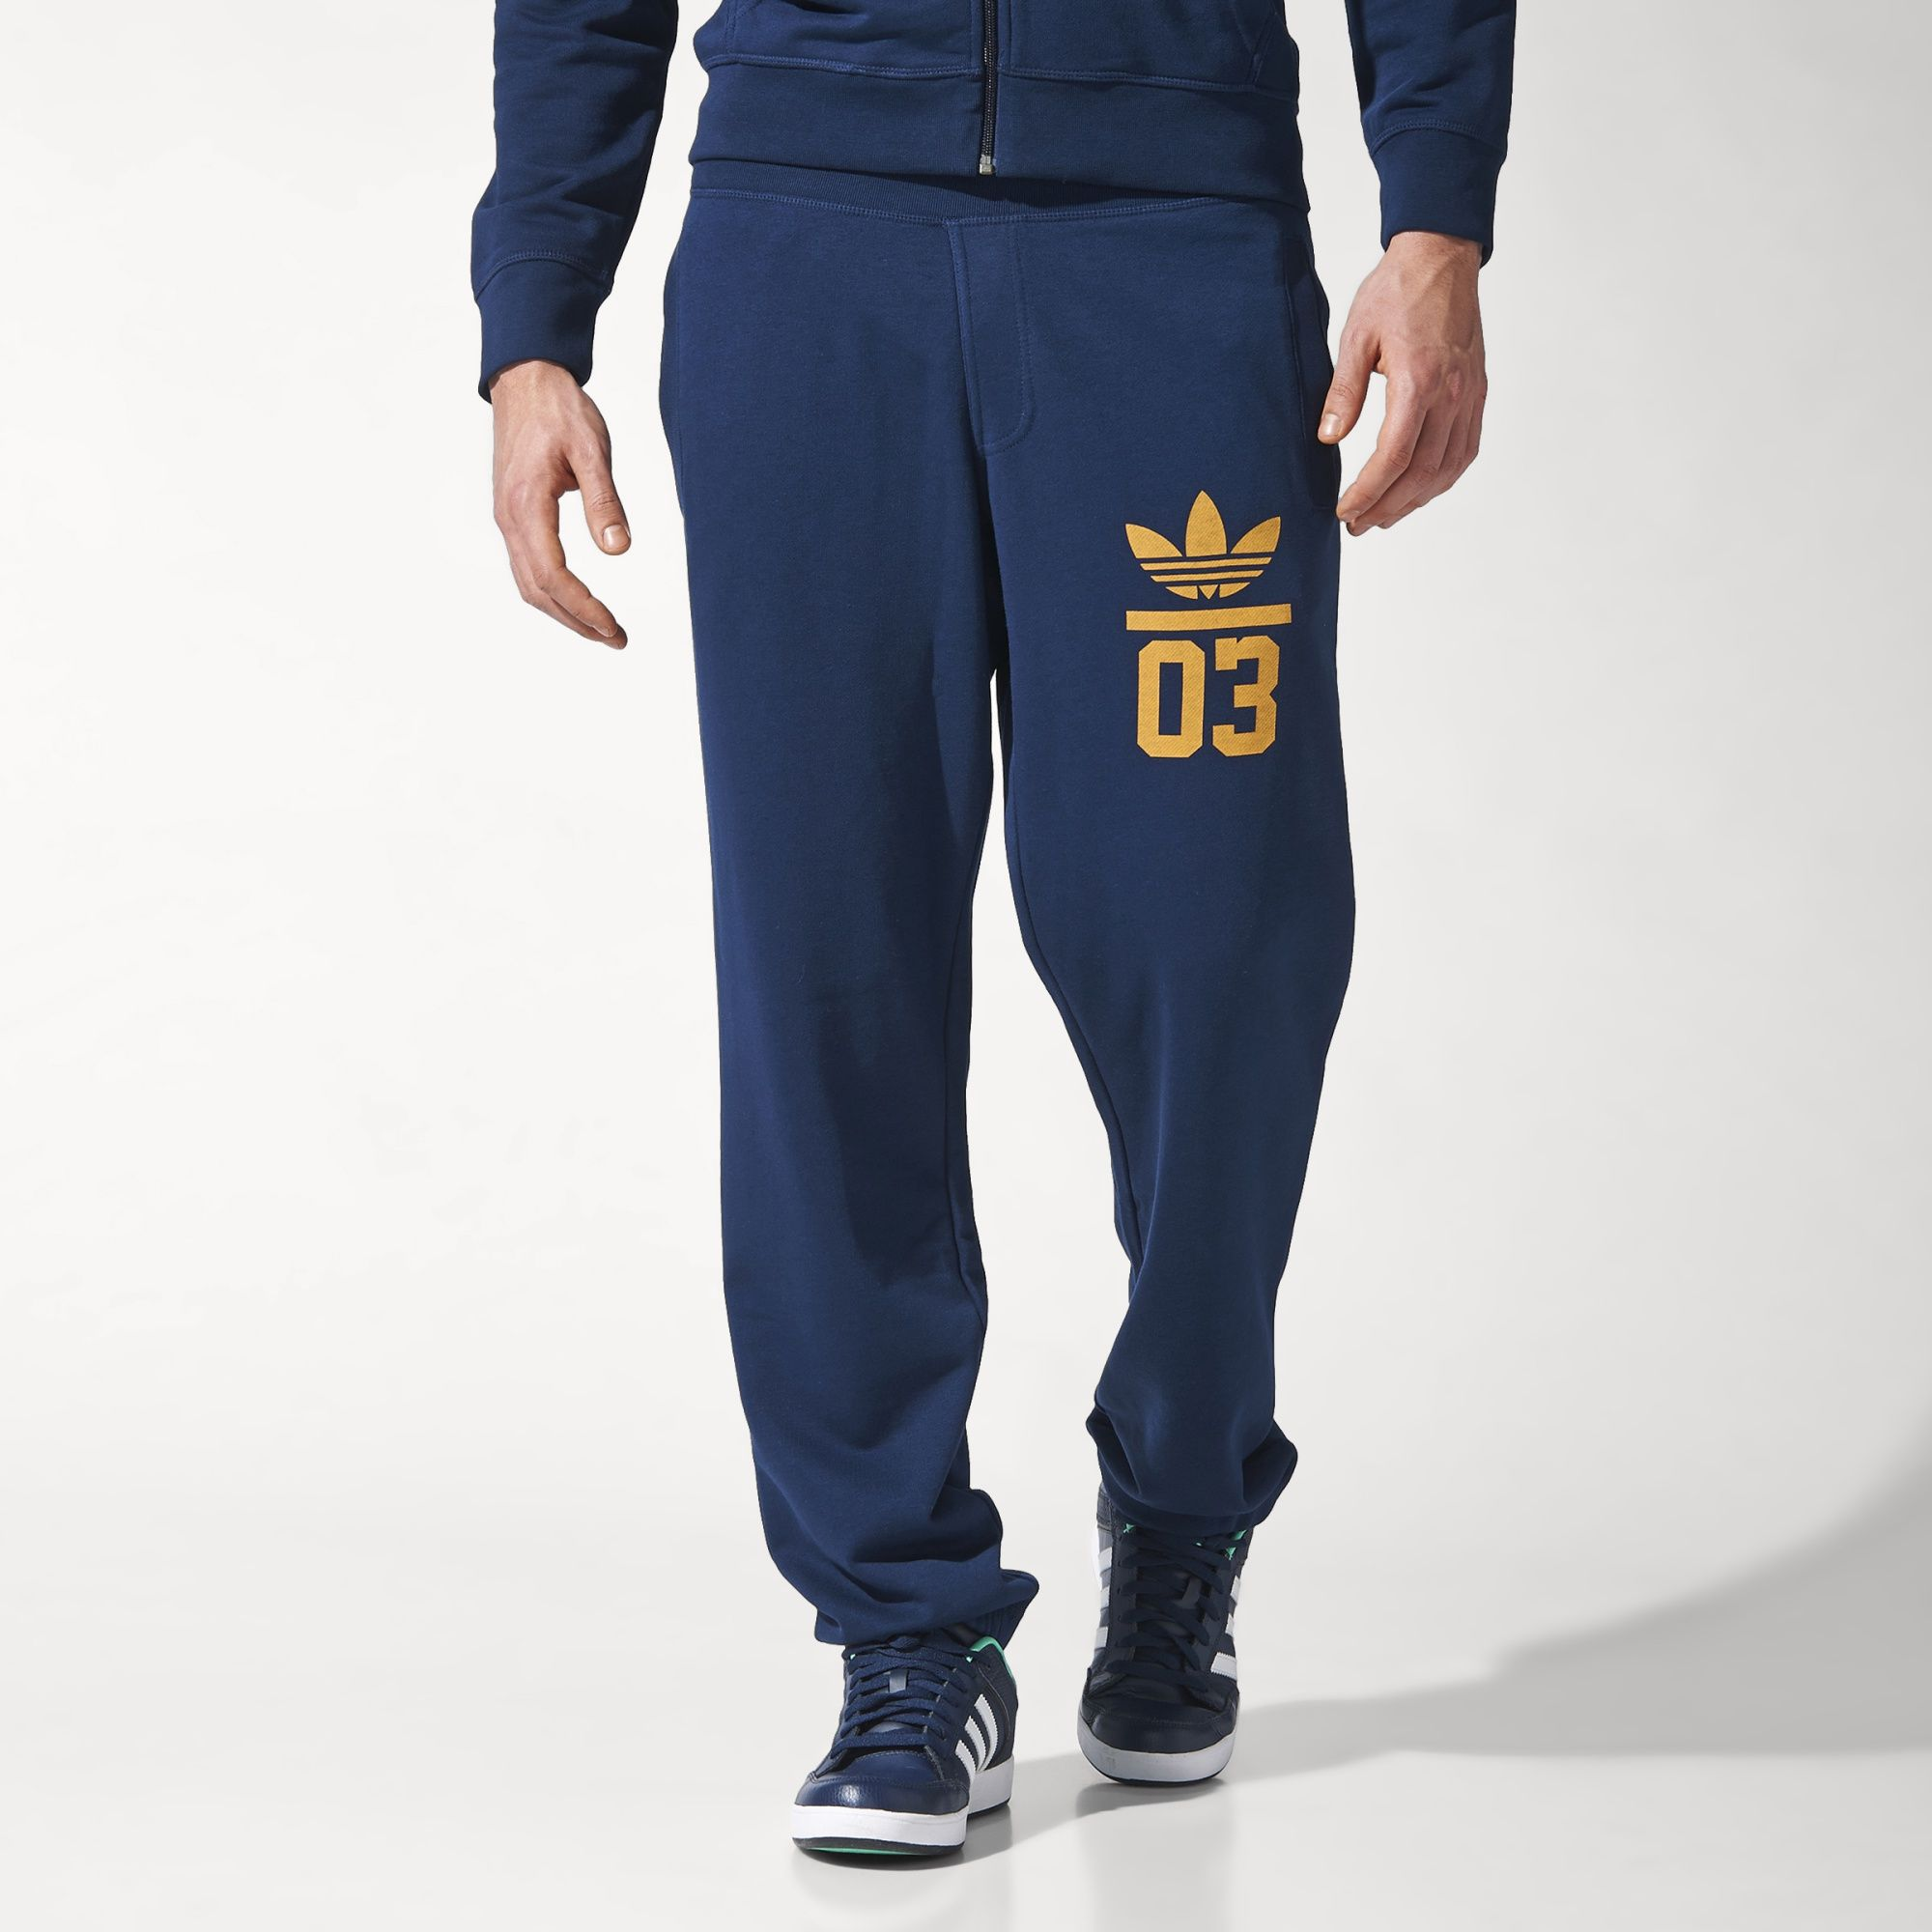 adidas 03 sweatpants